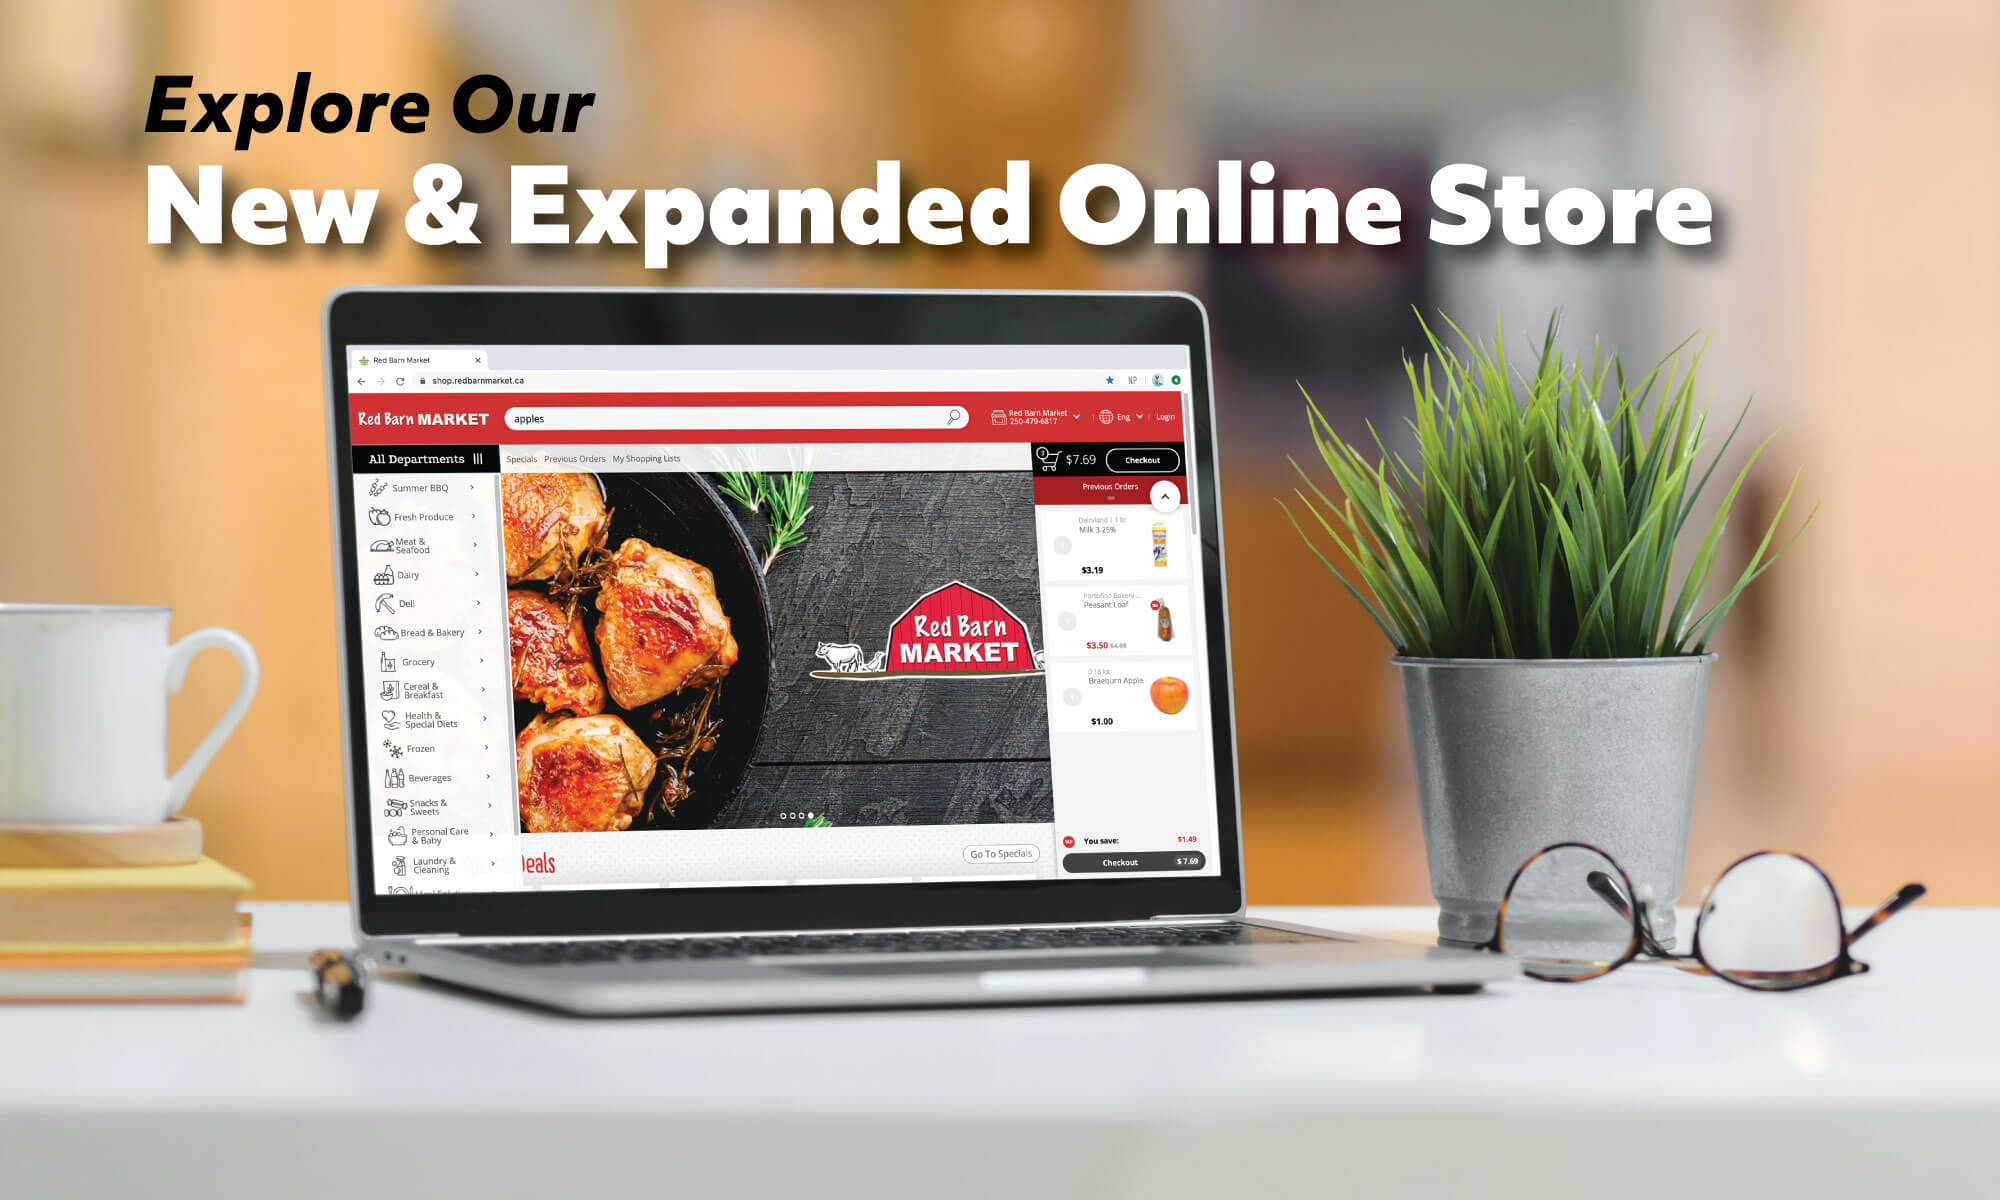 Explore Our New and Expanded Online Store 🛒Shop our Weekly Specials, explore a wider variety of Fruits and Vegetables, Red Barn Smokehouse Cheese and Meats, and hundreds of Grocery items.🍎<br /> <br /> Order your groceries when you want, up to 2 weeks in advance, and edit your cart any time.<br /> <br /> ⭐ Pick Up is currently only available at our Vanalman store location (751 Vanalman Ave). <br /> Contactless Curbside Pick Up service included.<br />